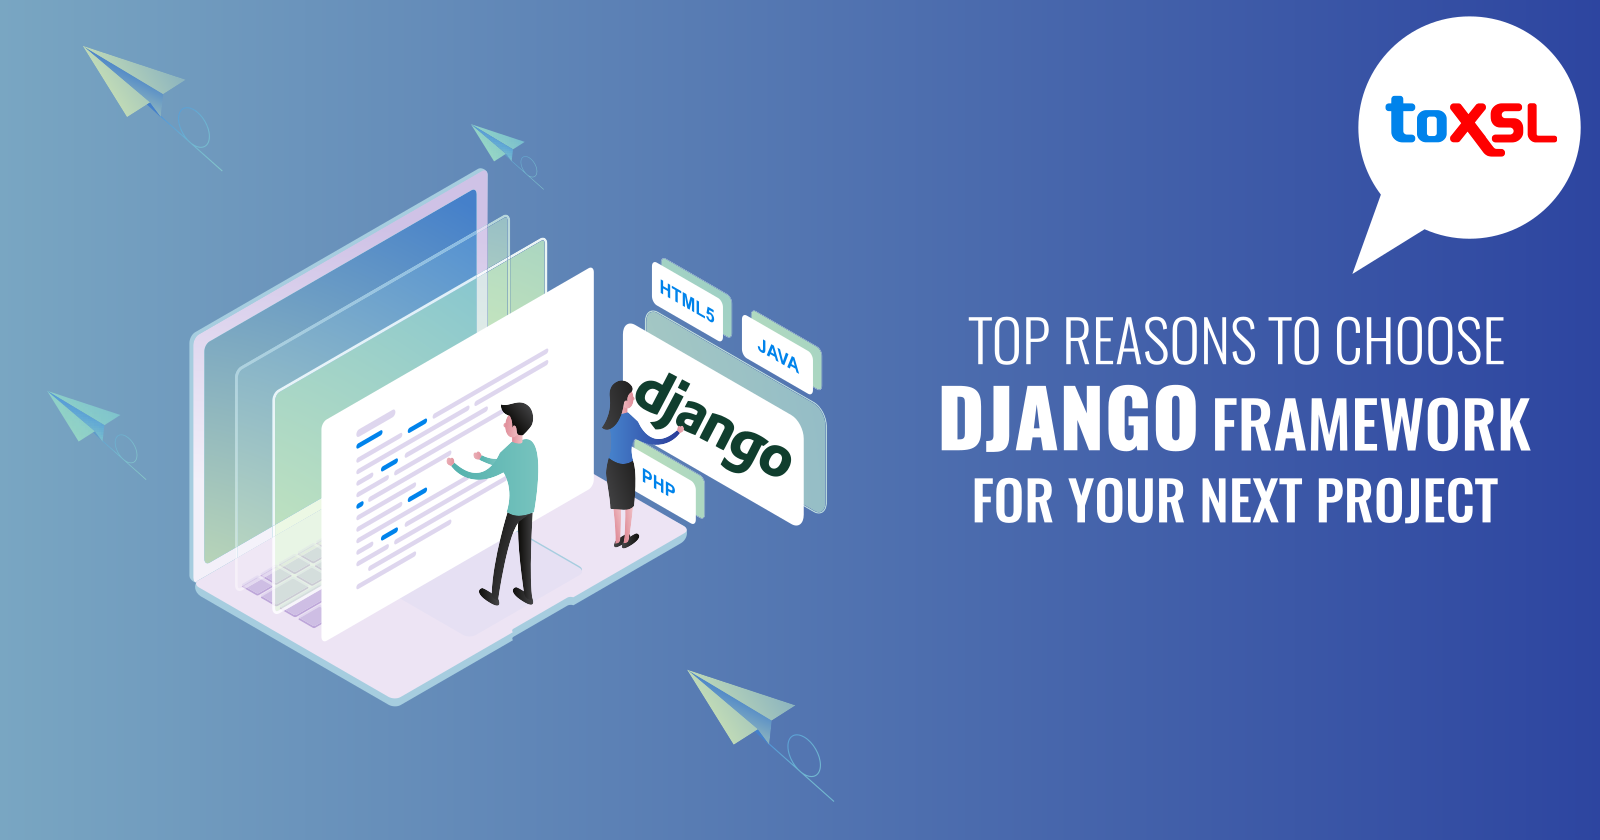 Top Reasons To Choose Django Framework For Your Next Project